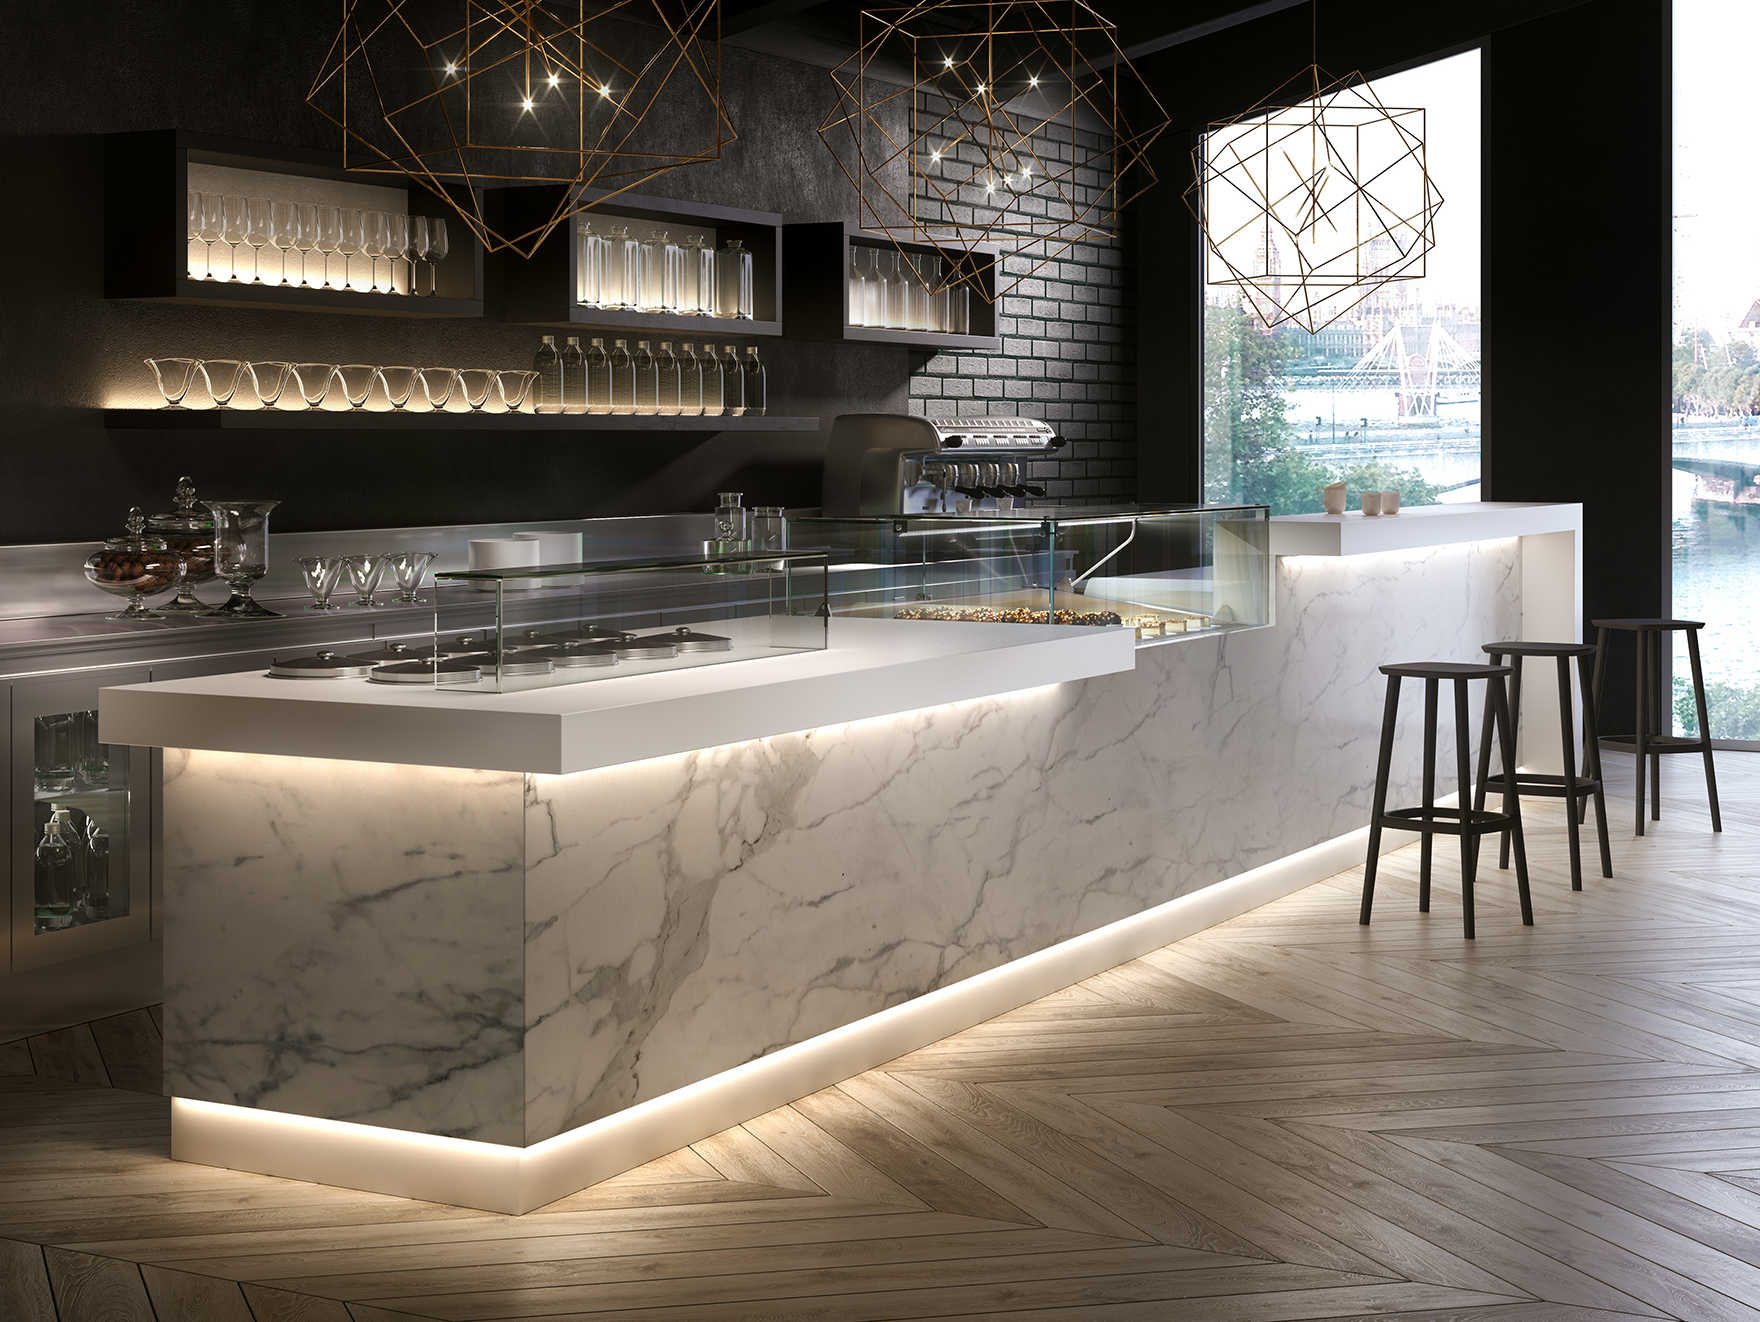 Favoloso Banco bar con modulo self-service serie Business bar | dbanchibar UW92